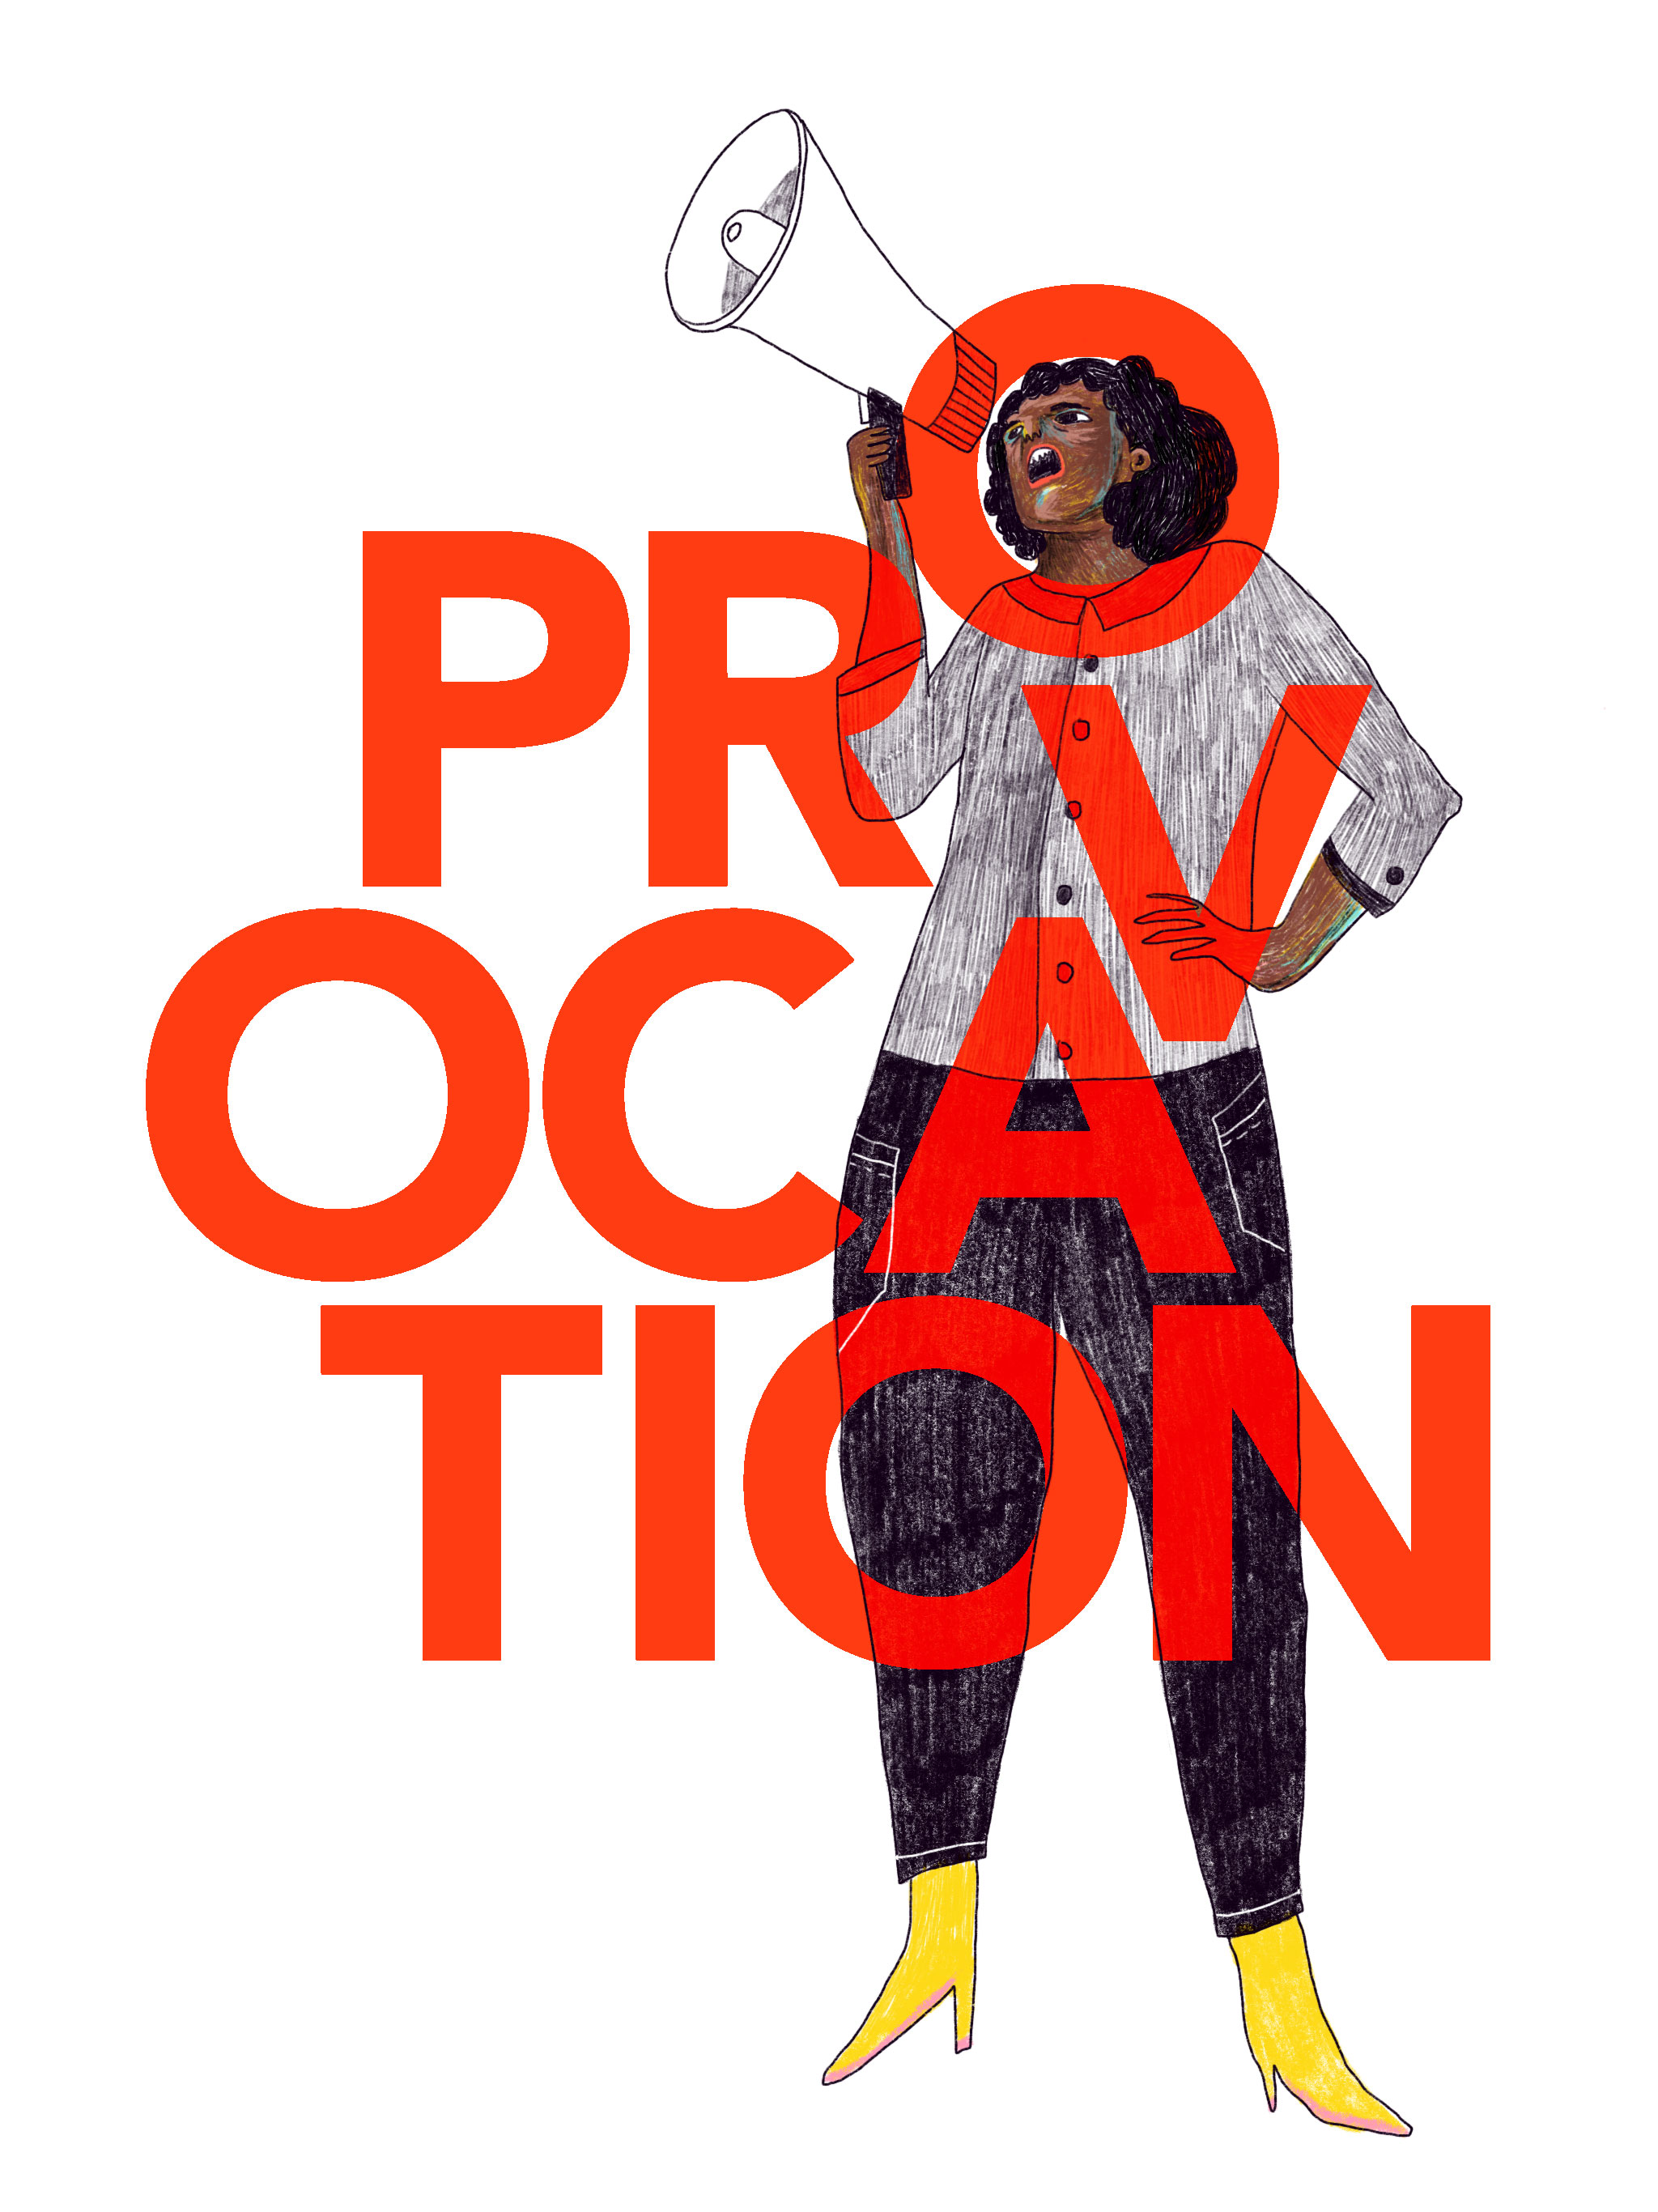 Provocation   March 22, 2019 at 7:00 pm Knox United Church  Tired of seeing mostly white dudes on your concert programs? So are we. Come celebrate the often underrepresented musical contributions of women and composers from developing nations. Exciting and gorgeous music by rising international stars Nilo Alcala (Phillipines), Vivian Fung (Canada), Thora Martinsdottir (Iceland), Sydney Guillaume (Haiti), Emile Desamours (Haiti), Andrew Balfour (Canada), Jocelyn Morlock (Canada).